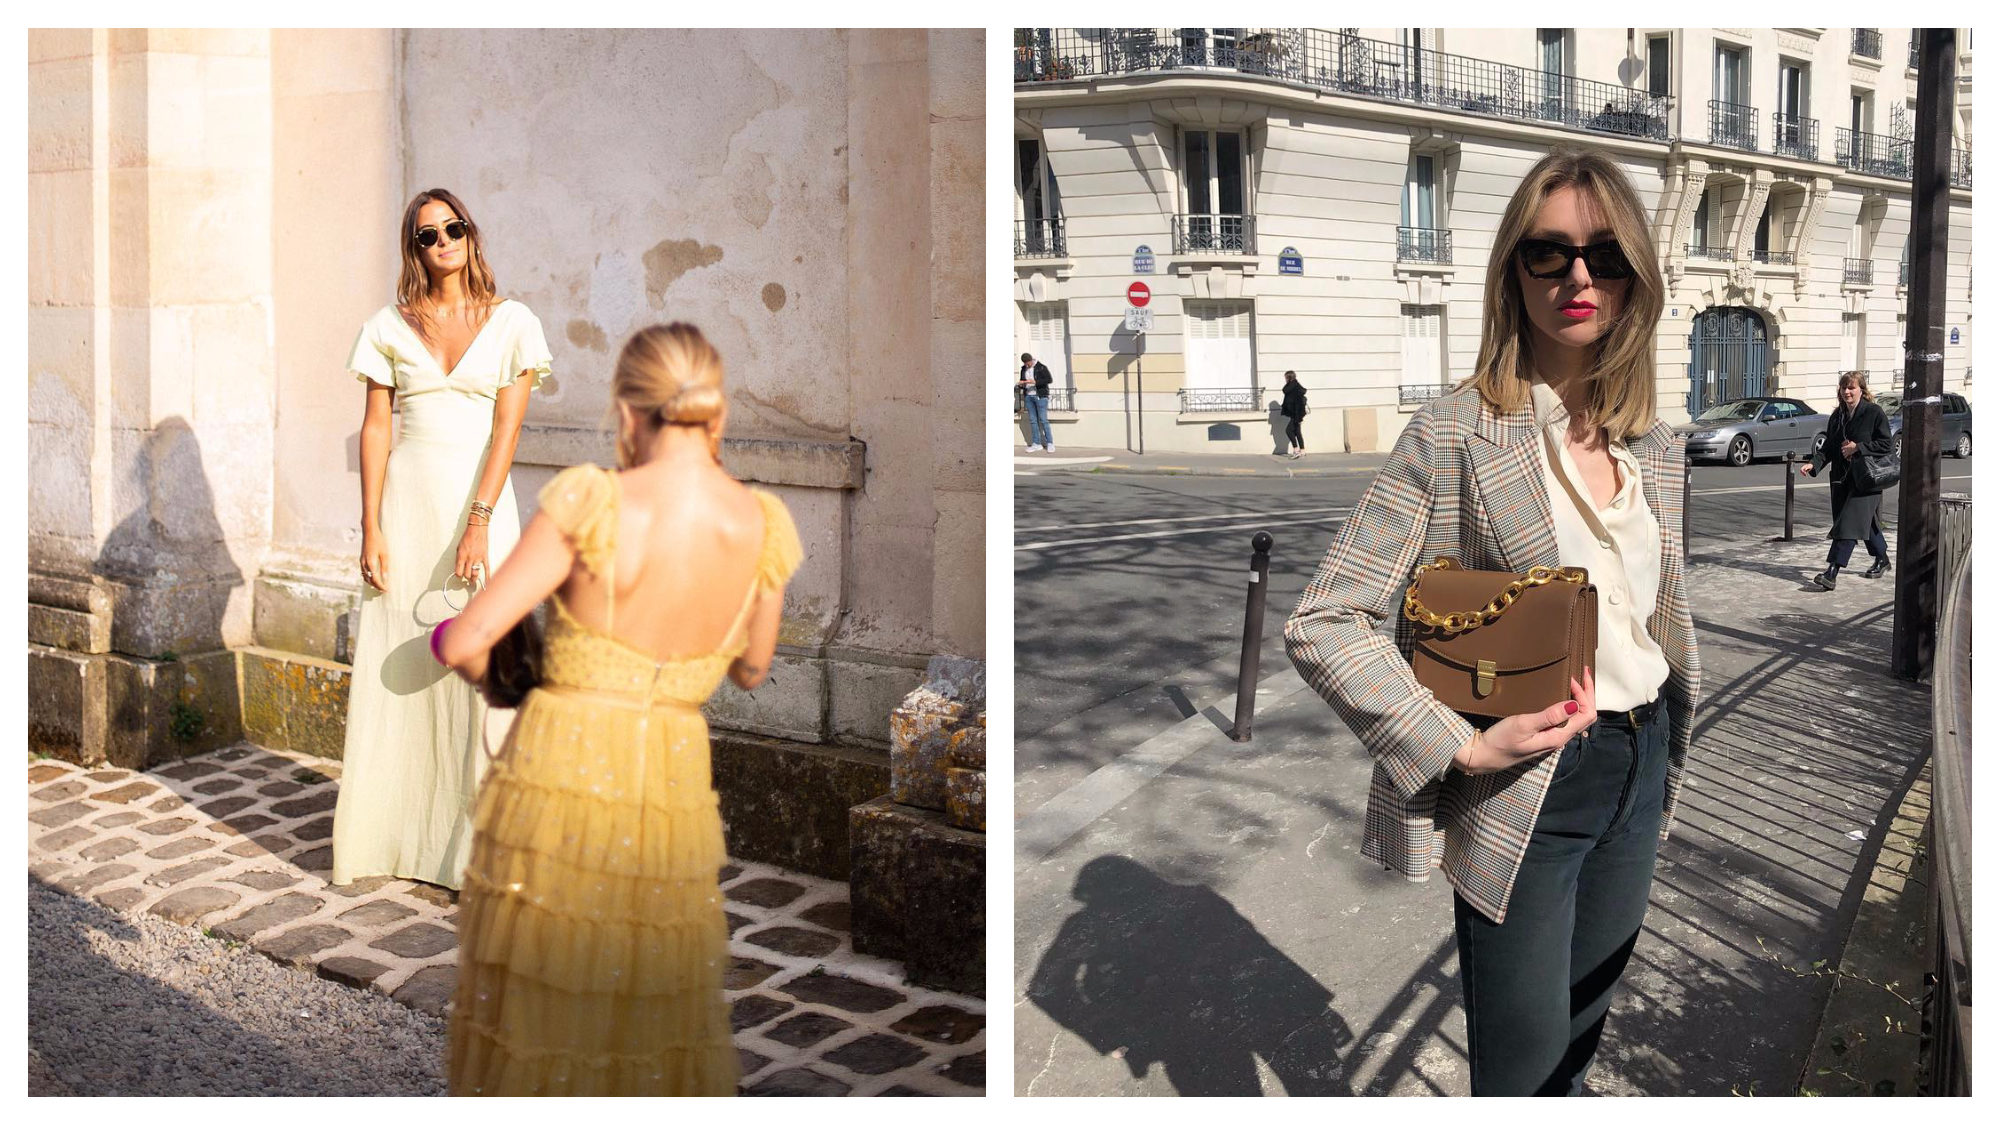 Margot Rousseau, fashion editor at Glamour magazine in Paris, taking a picture of Emma Ratajkowski (left). Paris Instagram fashion influencer Lucie Mahé holding a brown handbag posing in a Paris street (right).